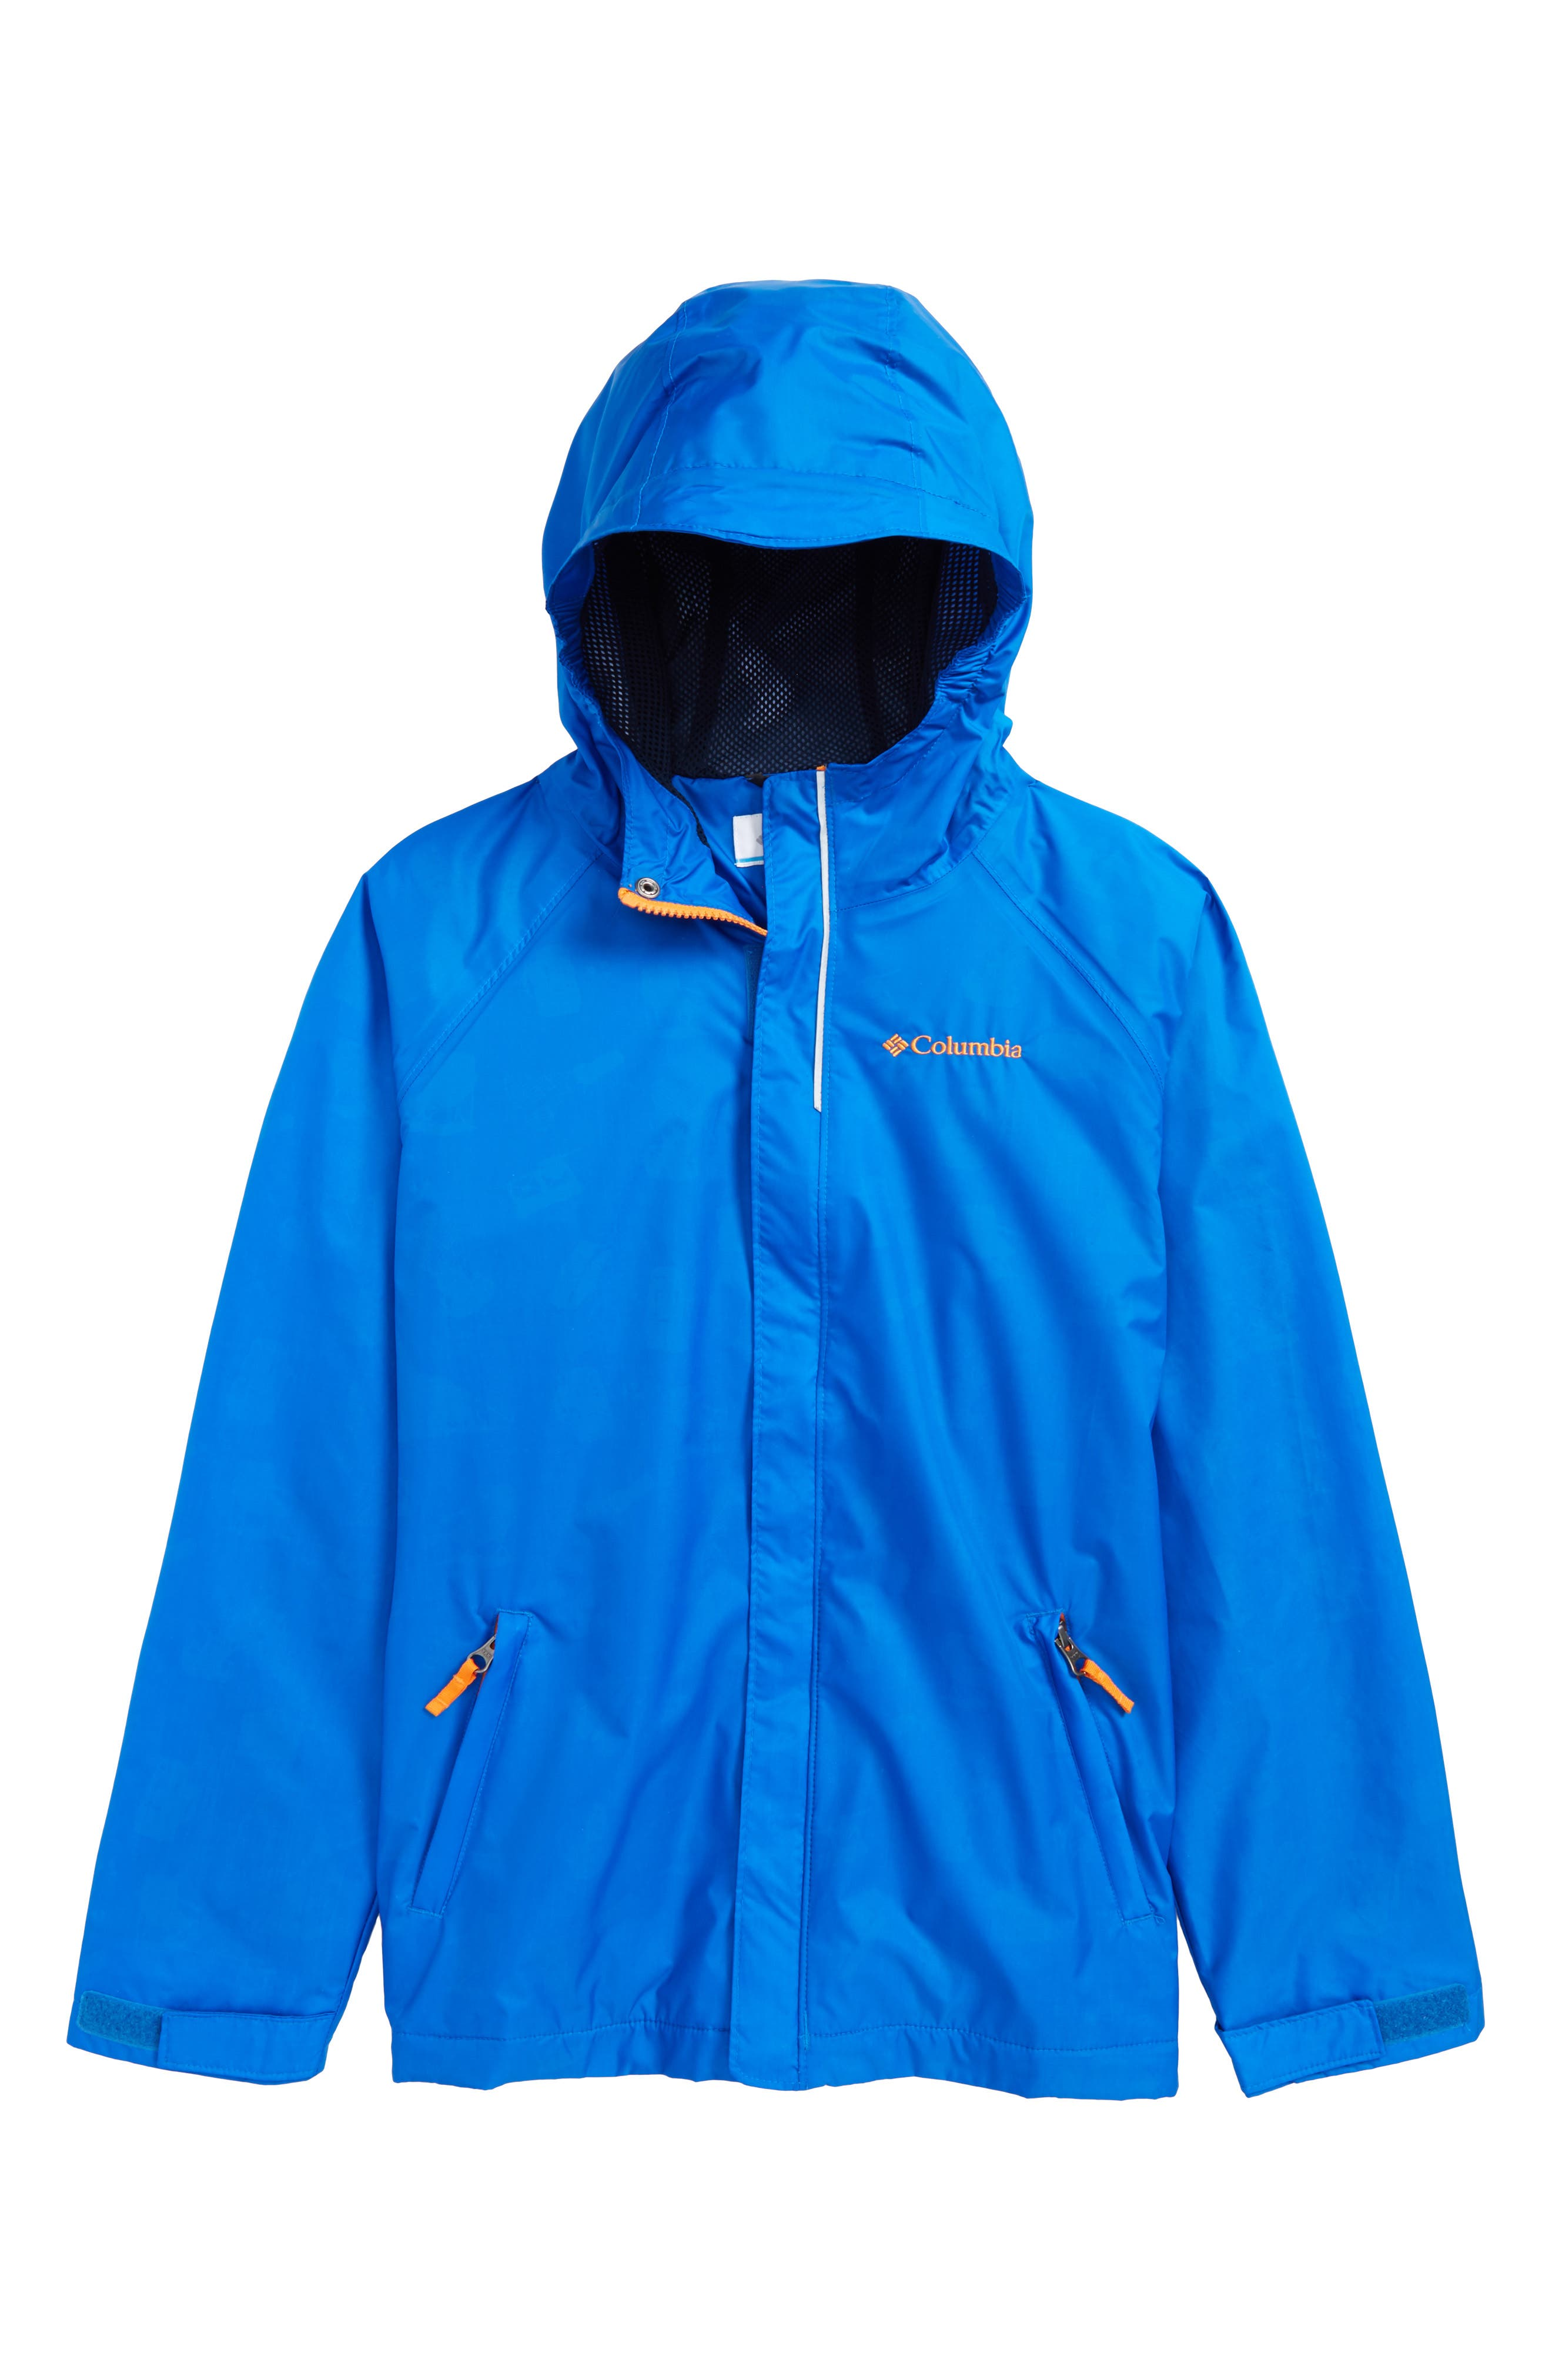 Main Image - Columbia 'Fast & Curious™' Waterproof Hooded Jacket (Little Boys & Big Boys)